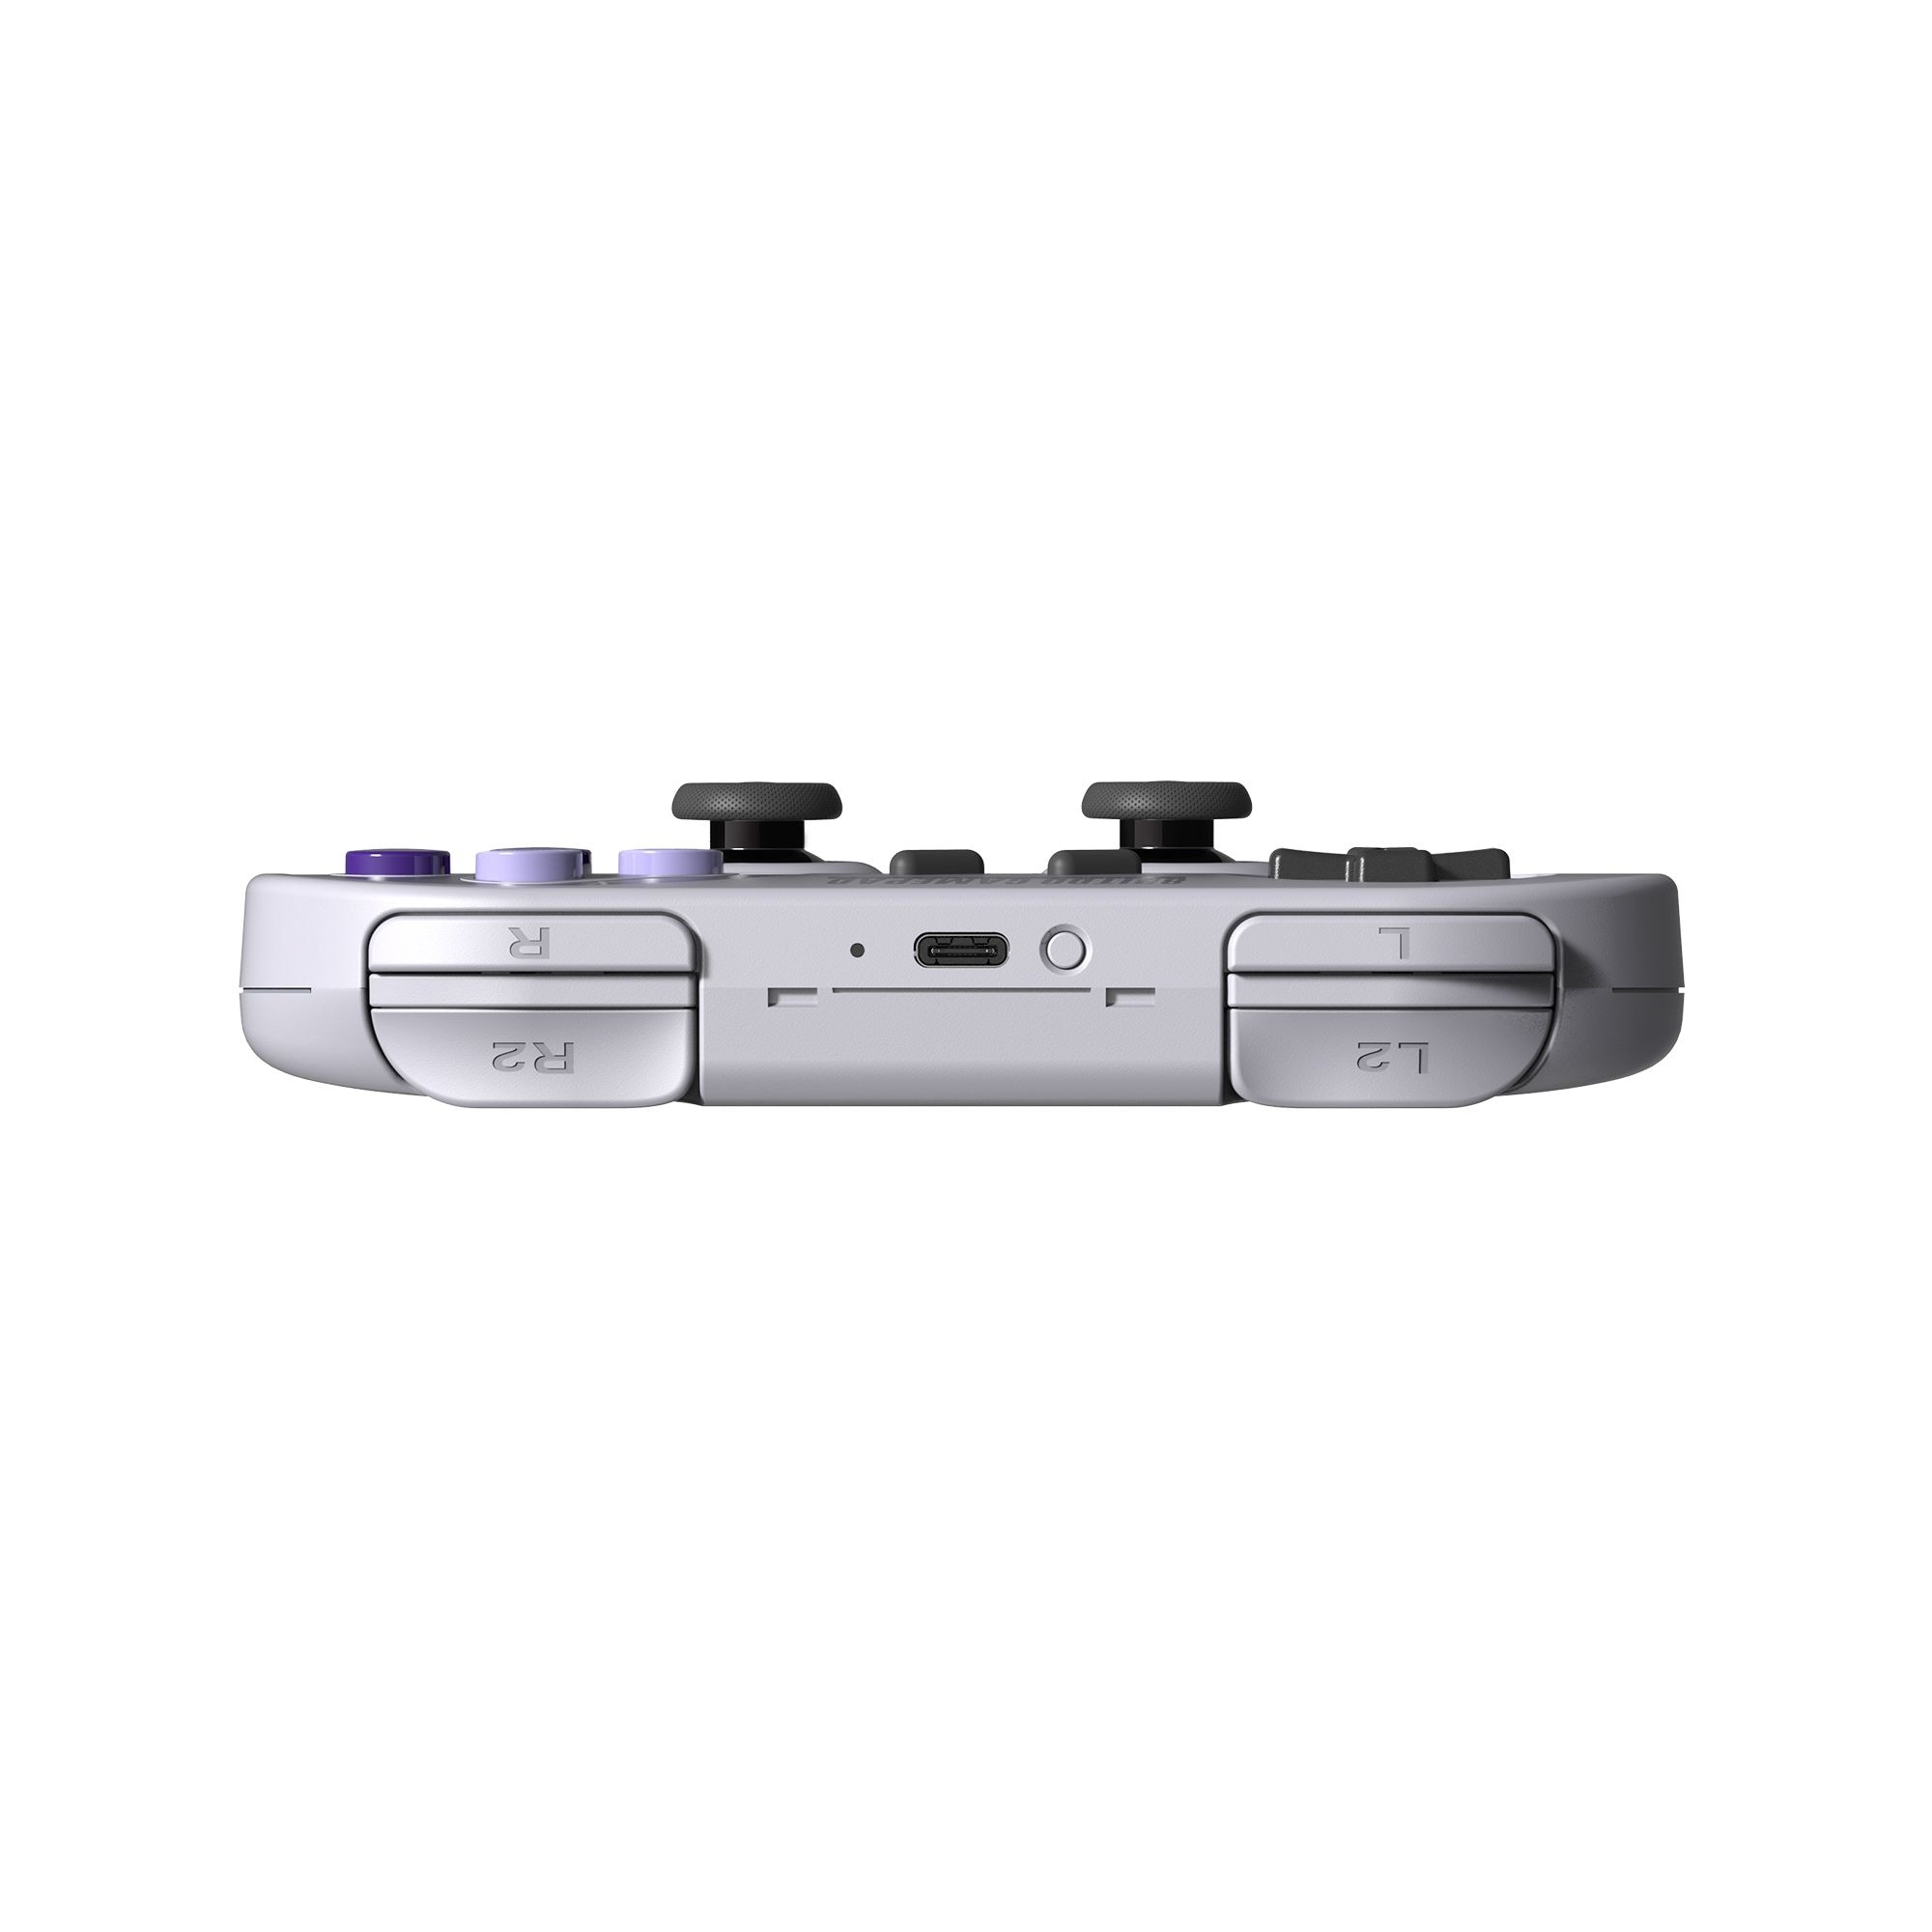 8Bitdo SN30 Pro Wireless Bluetooth Controller with Classic Joystick Gamepad for Android/Switch/Windows - 6